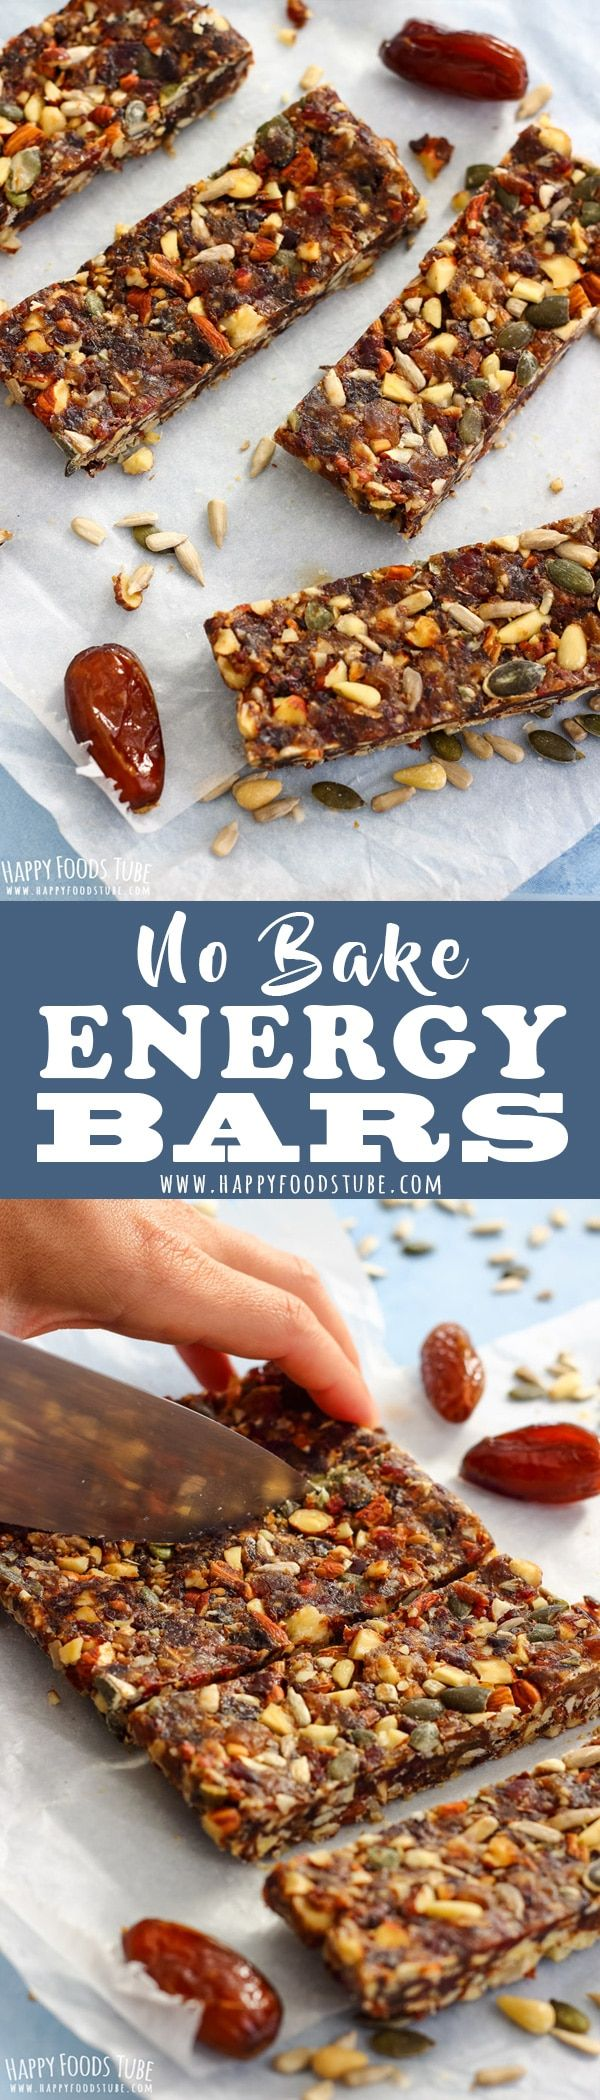 These chewy No Bake Energy Bars are rich in fiber, antioxidants and vitamins. This easy no bake healthy snack is also gluten-free and vegan. #nobake #energybars #glutenfree #homemade #recipe #vegan #howtomake #healthy #snack #easy #simple #quicksnack via @happyfoodstube